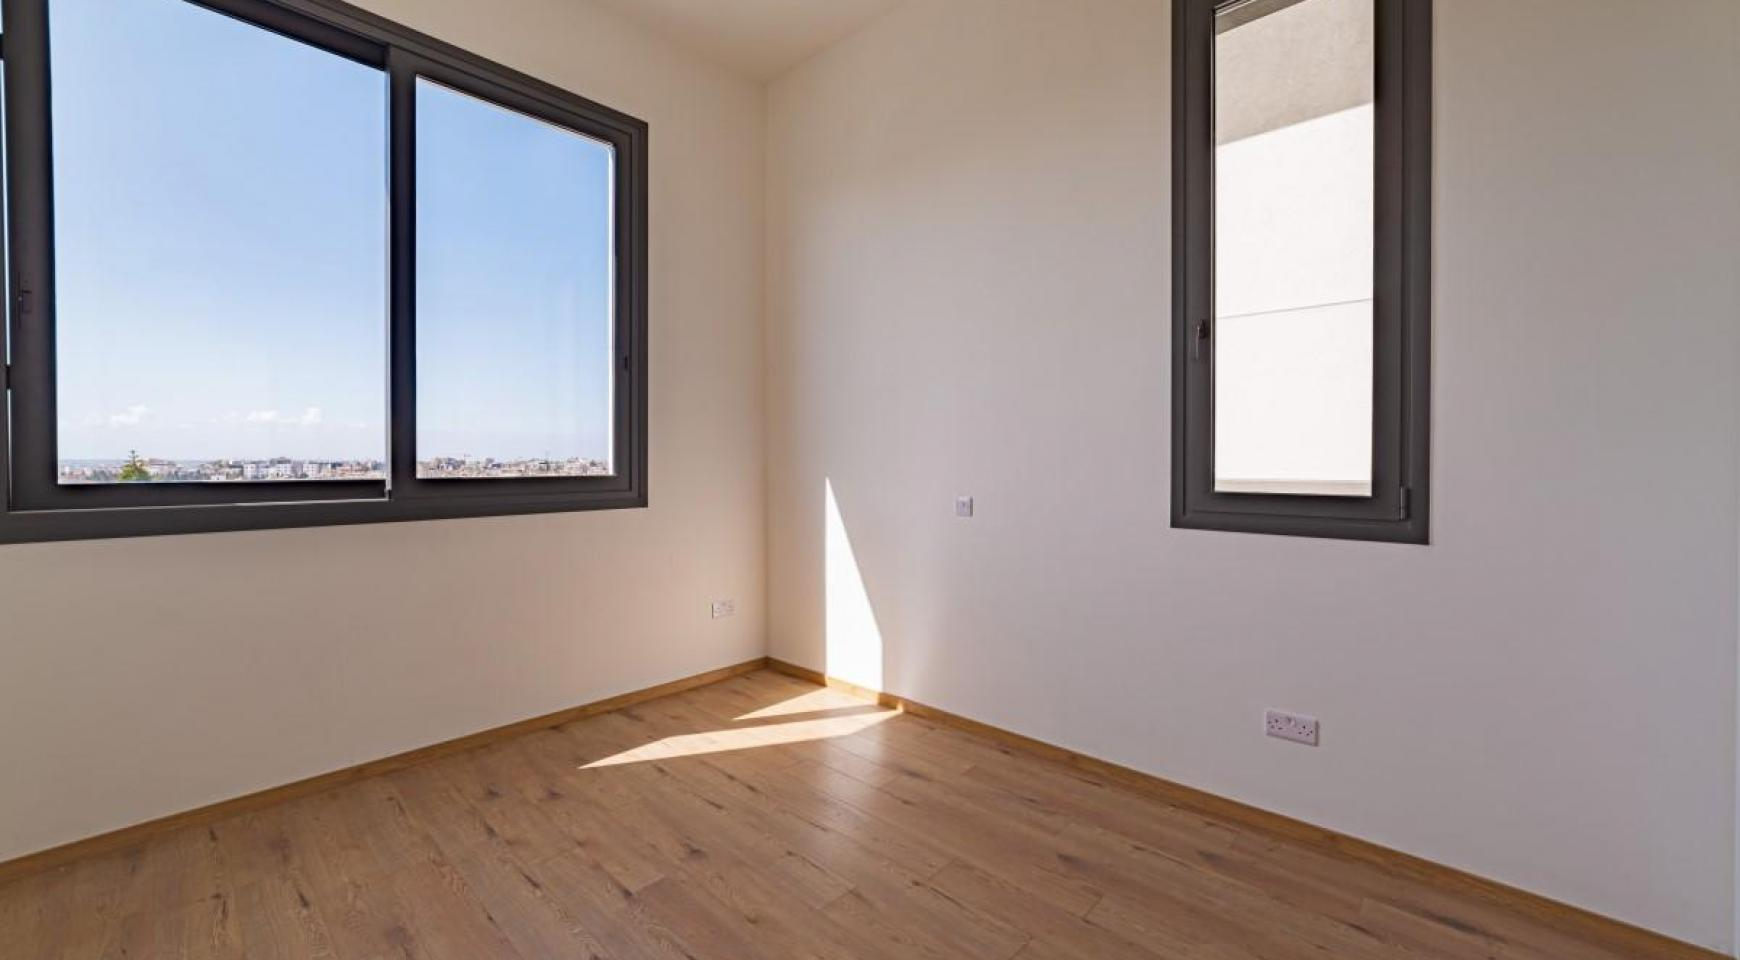 Urban City Residences, Block A. New Spacious 3 Bedroom Apartment 201 in the City Centre - 16